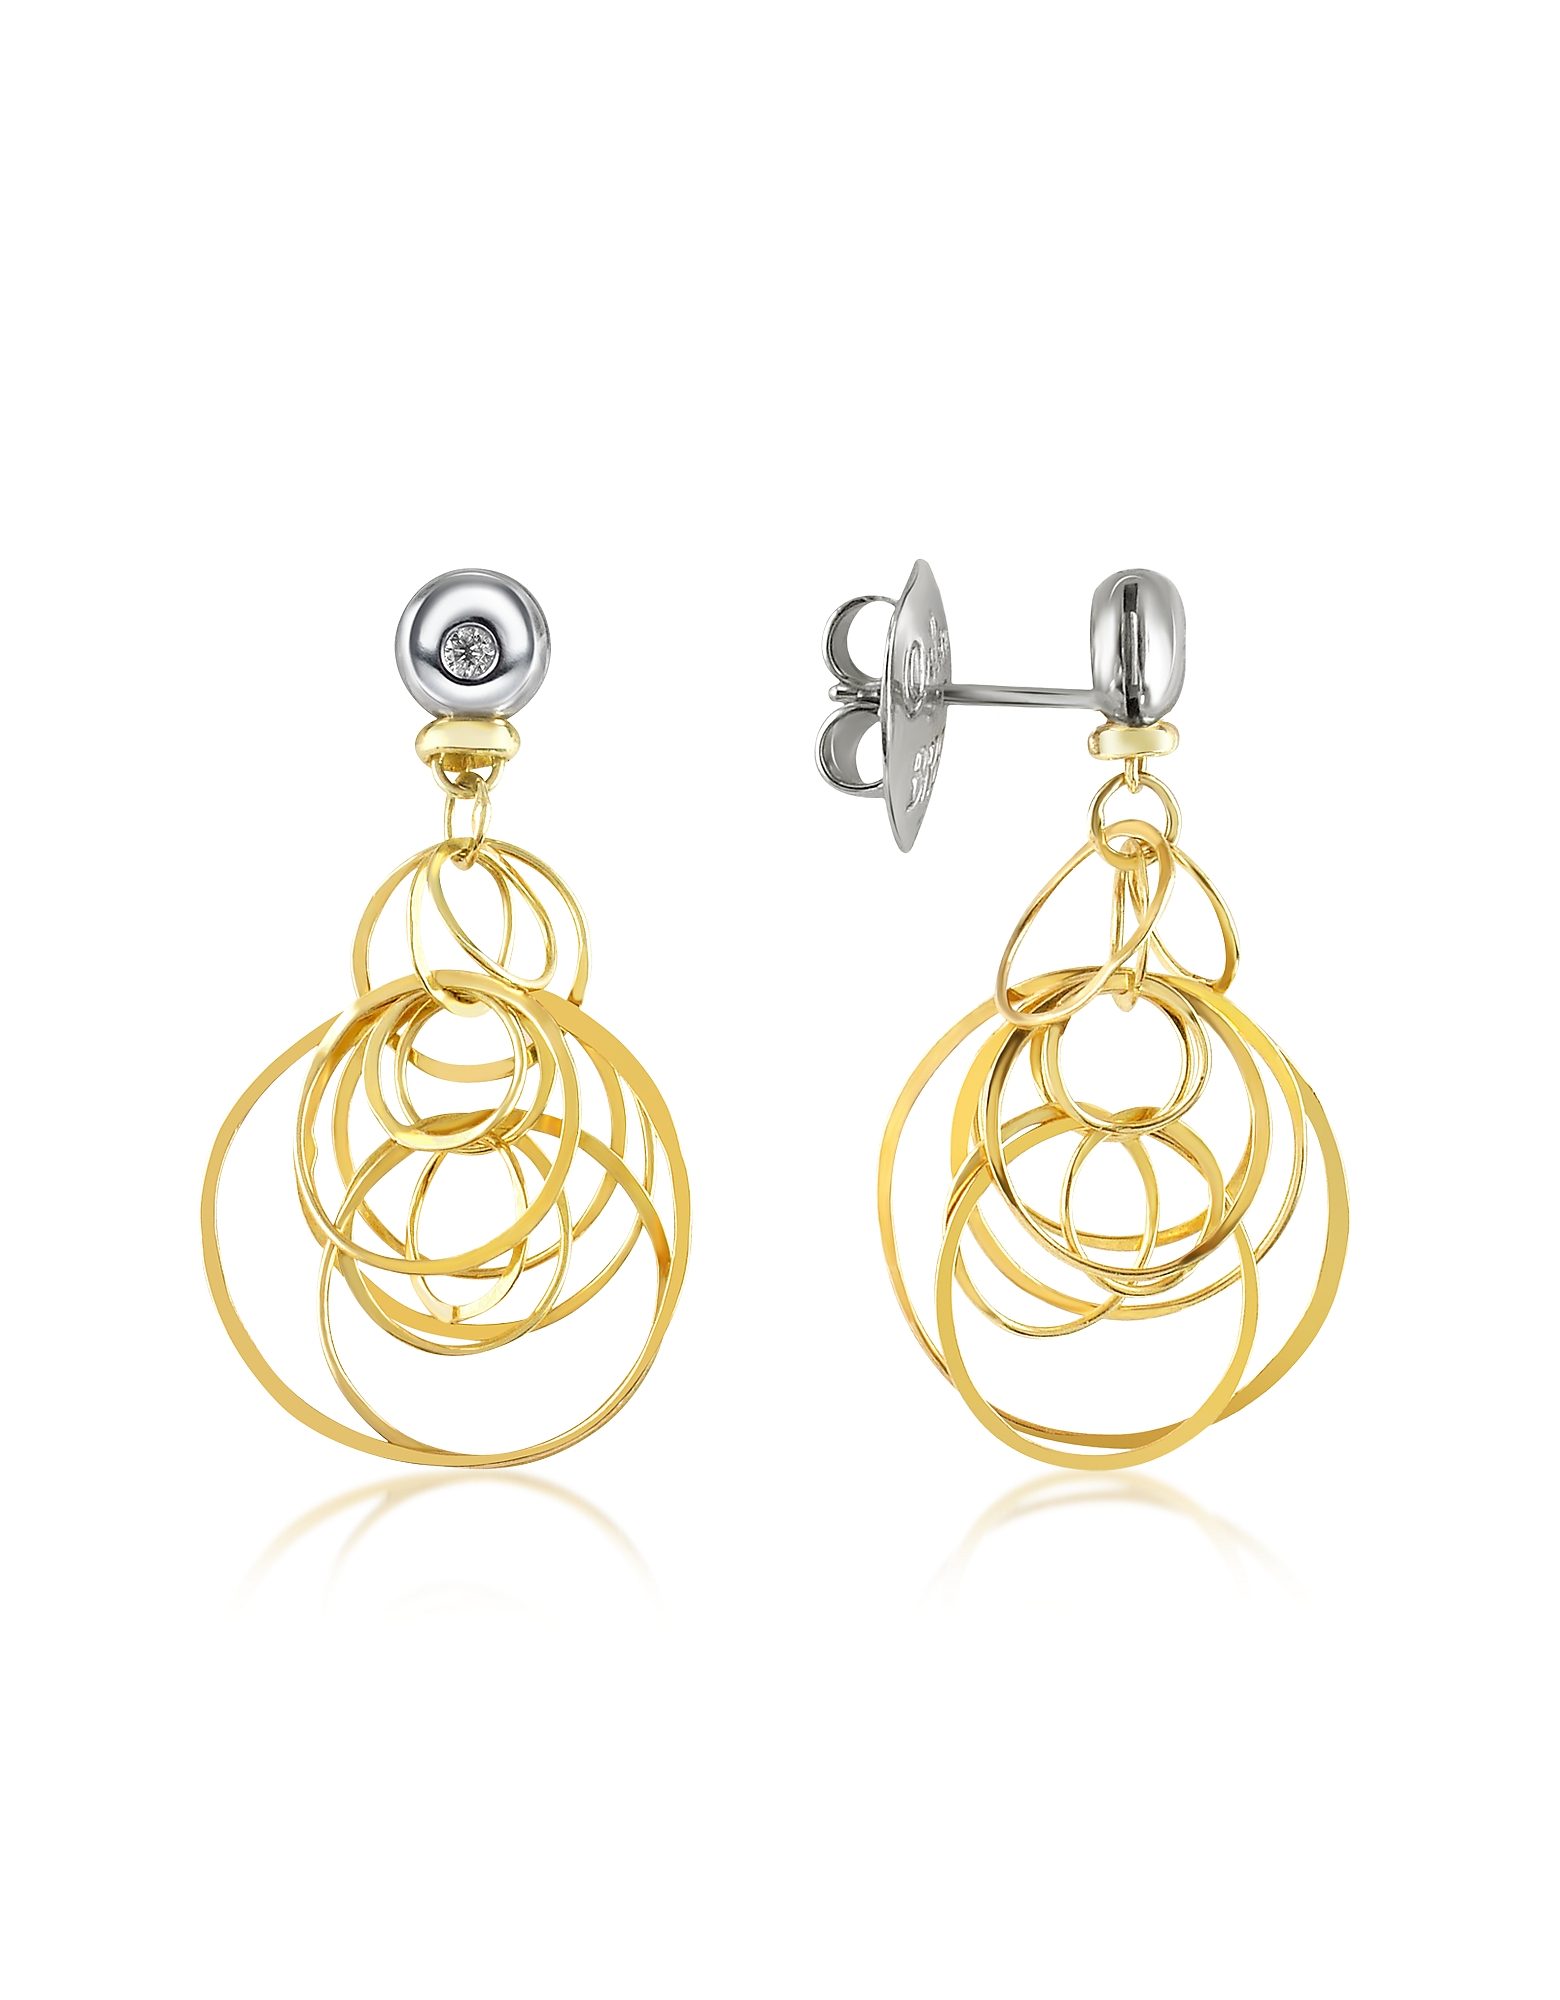 Orlando Orlandini Earrings, Scintille - Small Diamond 18K Gold Drop Earrings